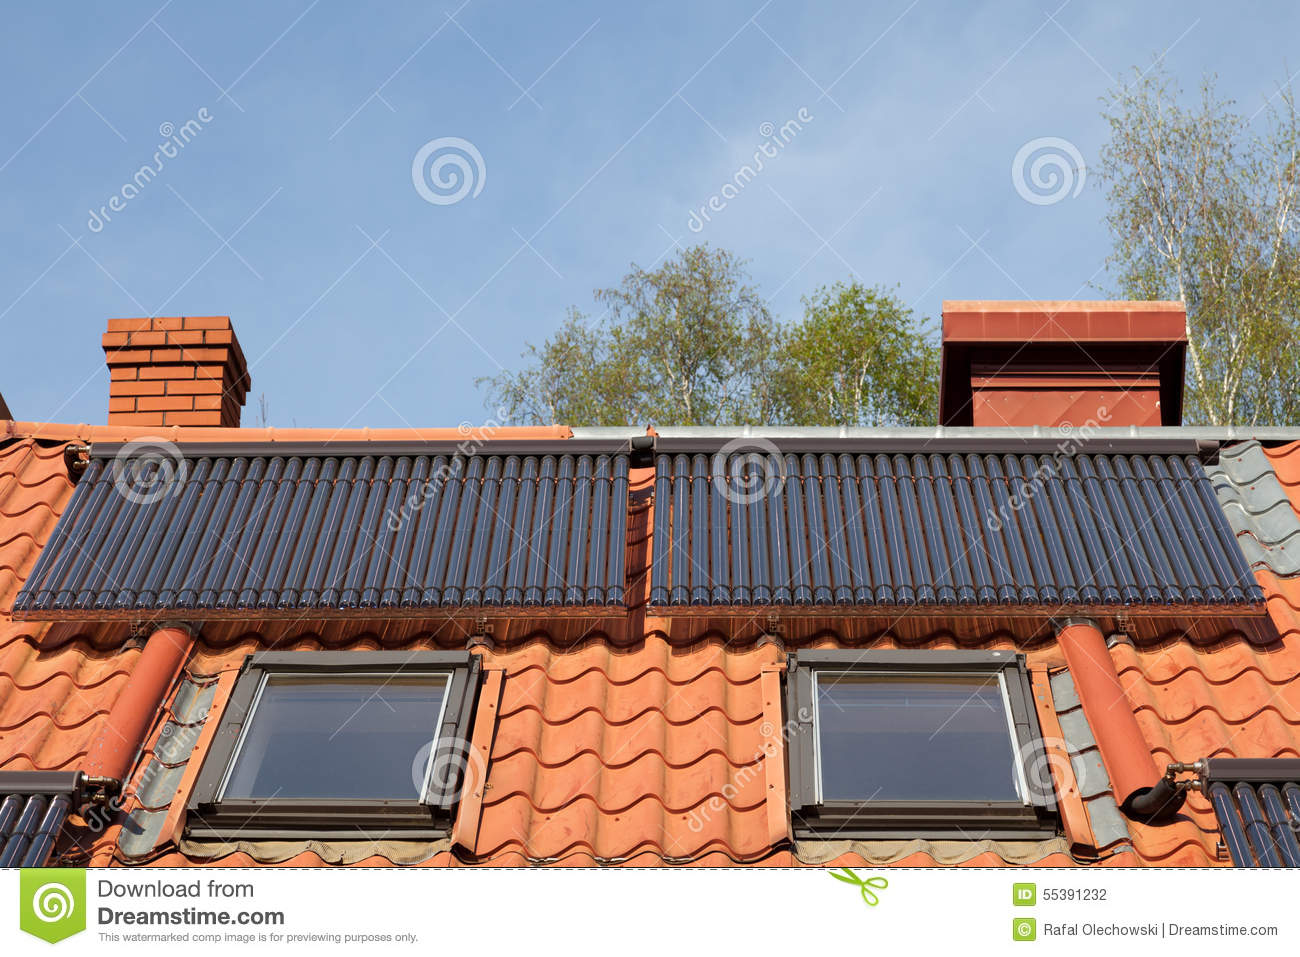 Solar pipes on roof